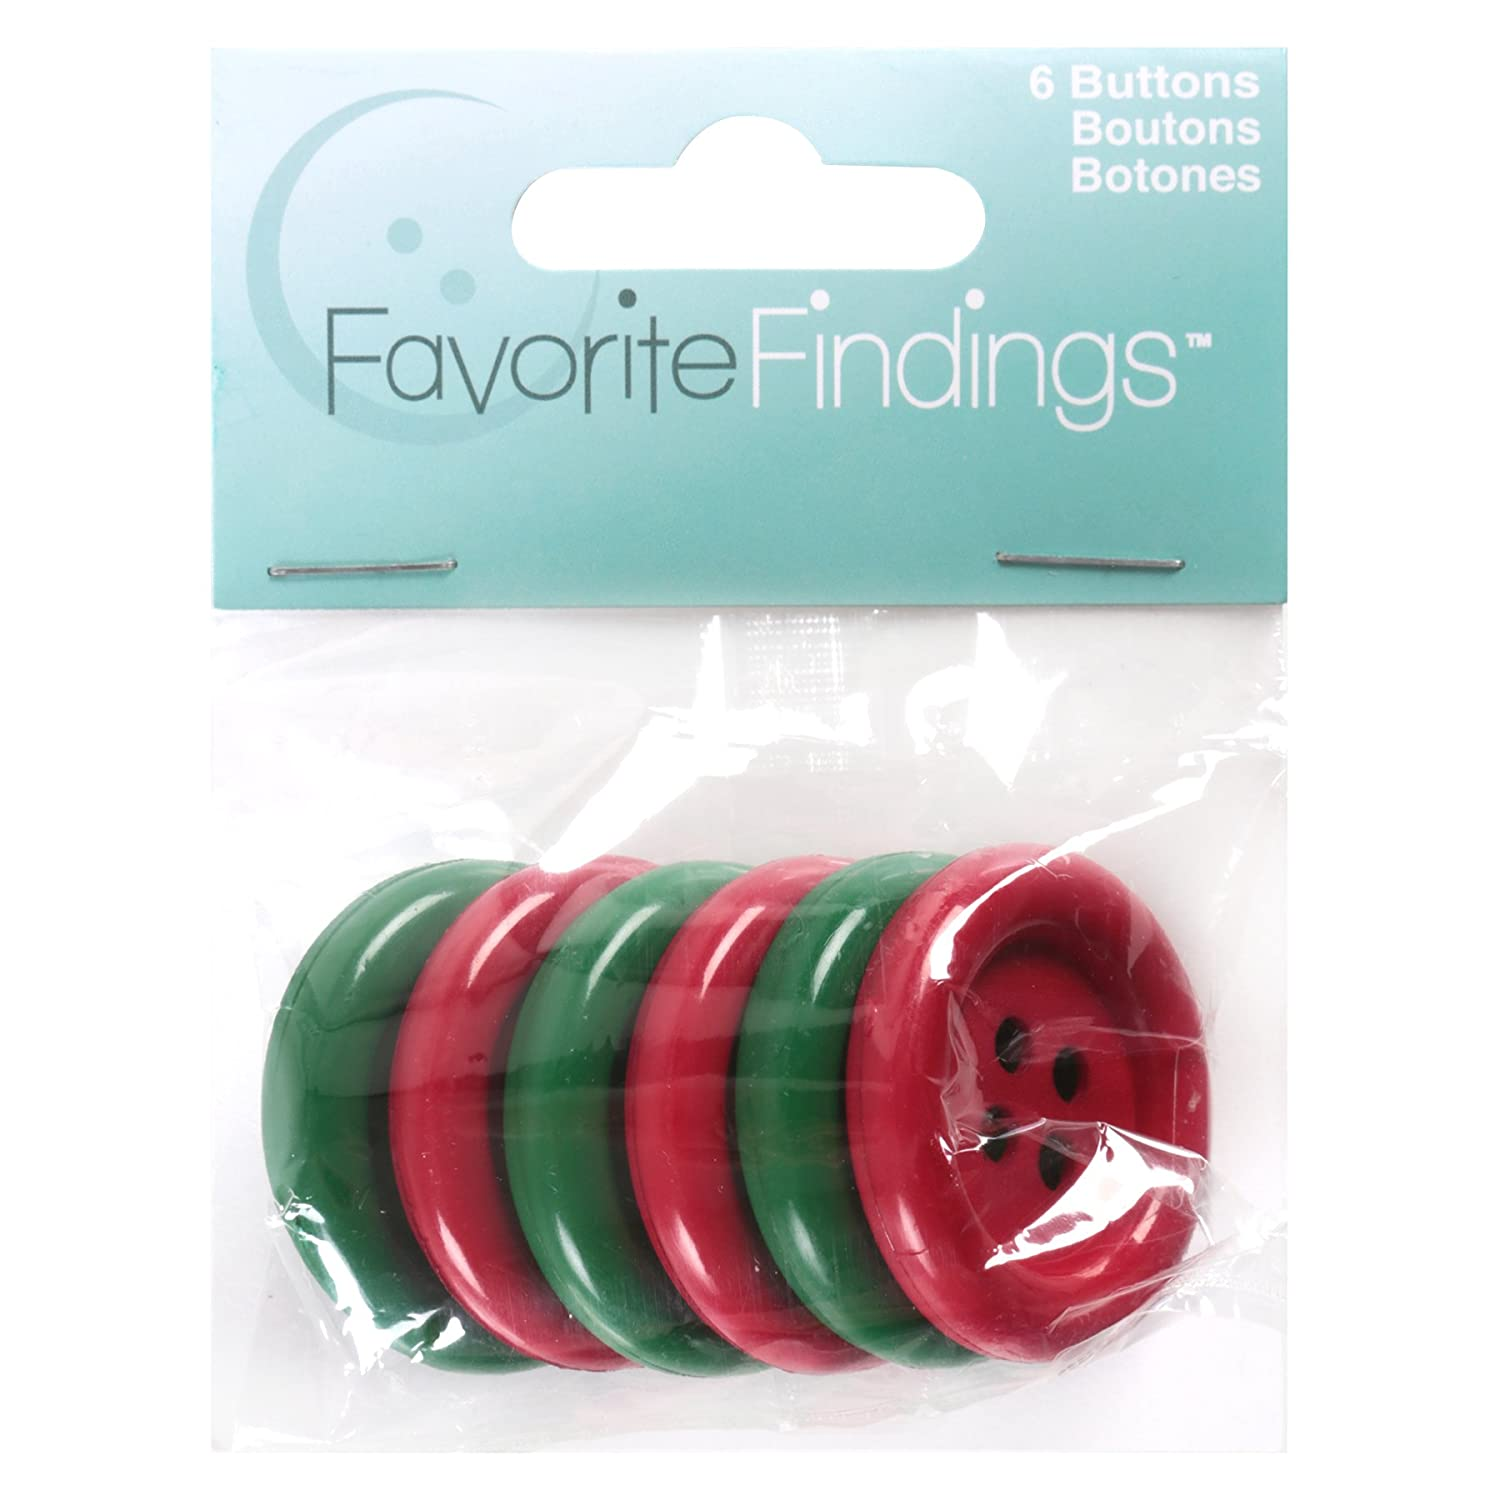 Favorite Findings Holiday Buttons-Big Christmas 6/Pkg by Blumenthal Lansing   B005P1USI8